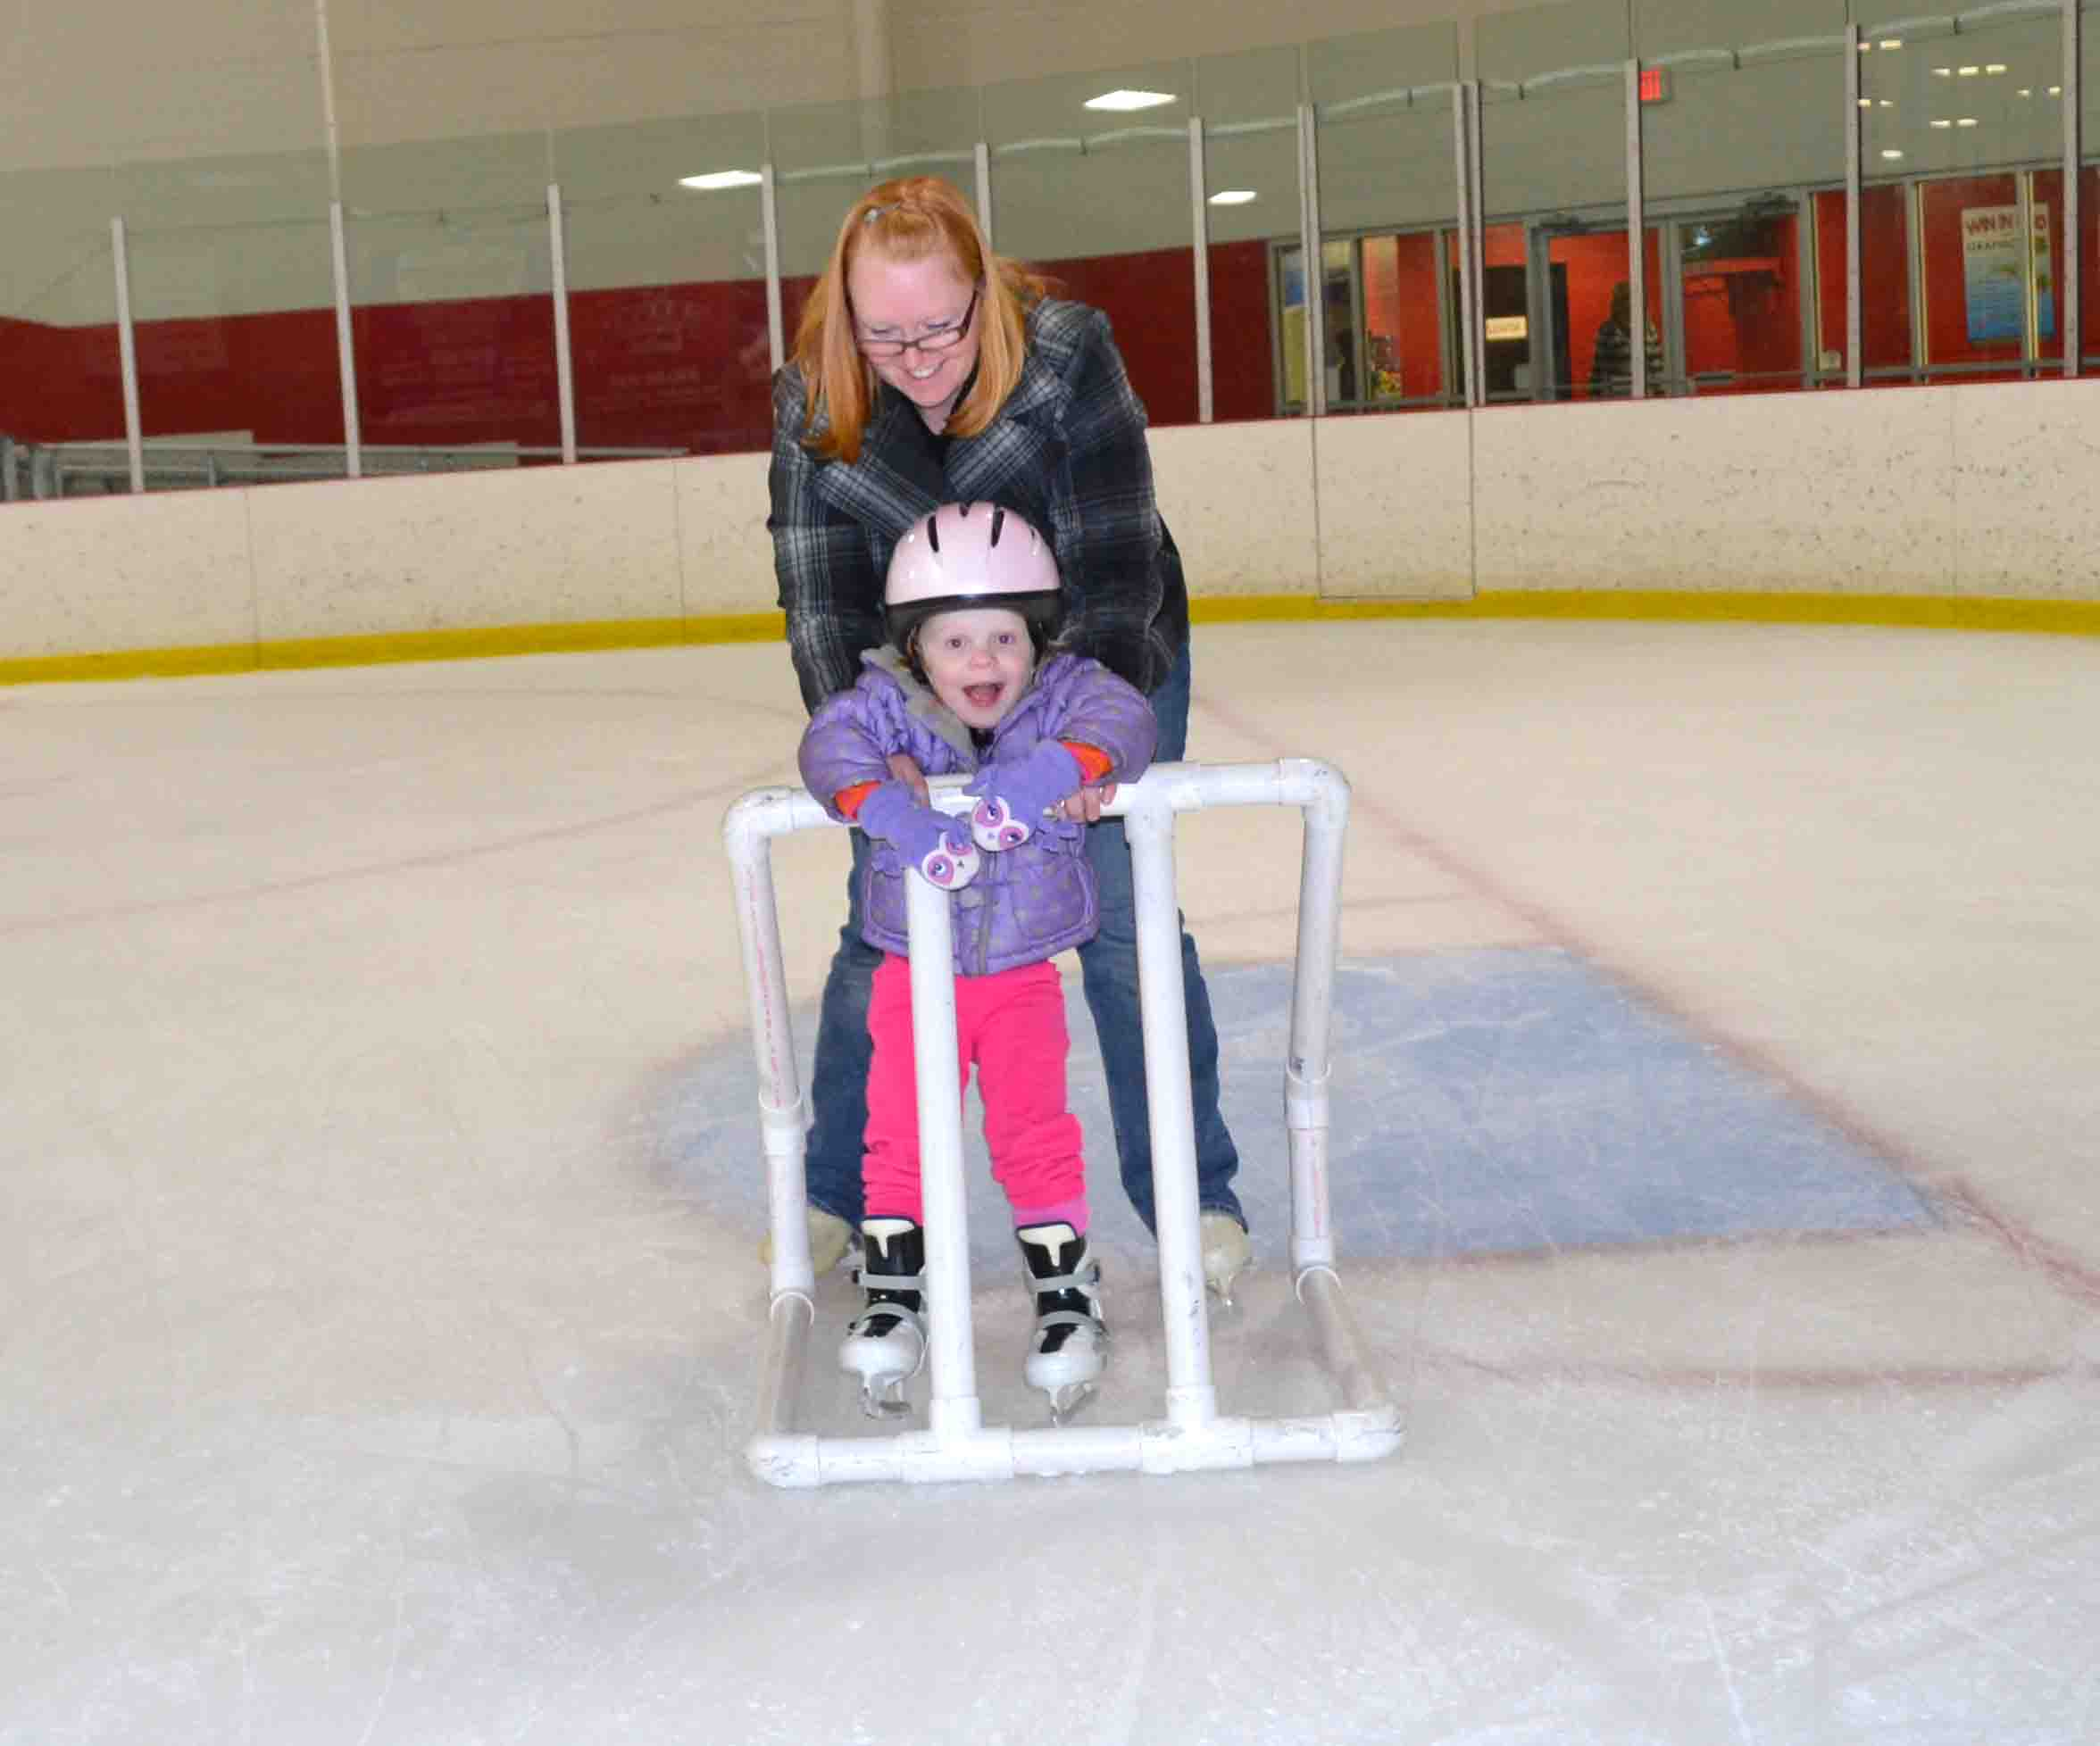 Mrs. Behnke skates around with Caroline.